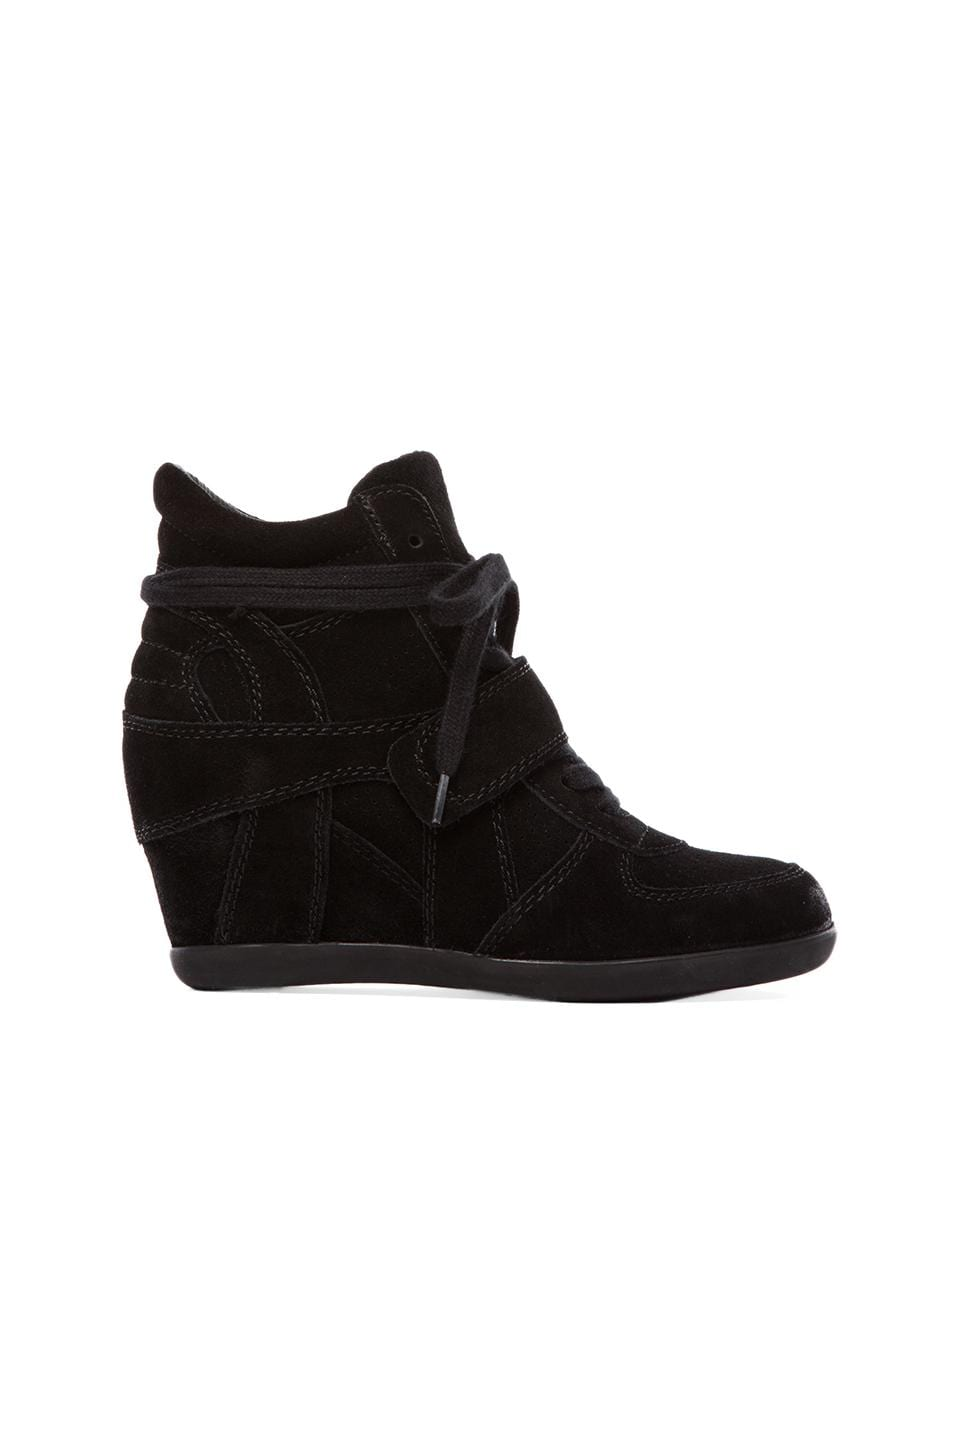 Ash Bowie Calf Suede Sneaker Wedge in Black